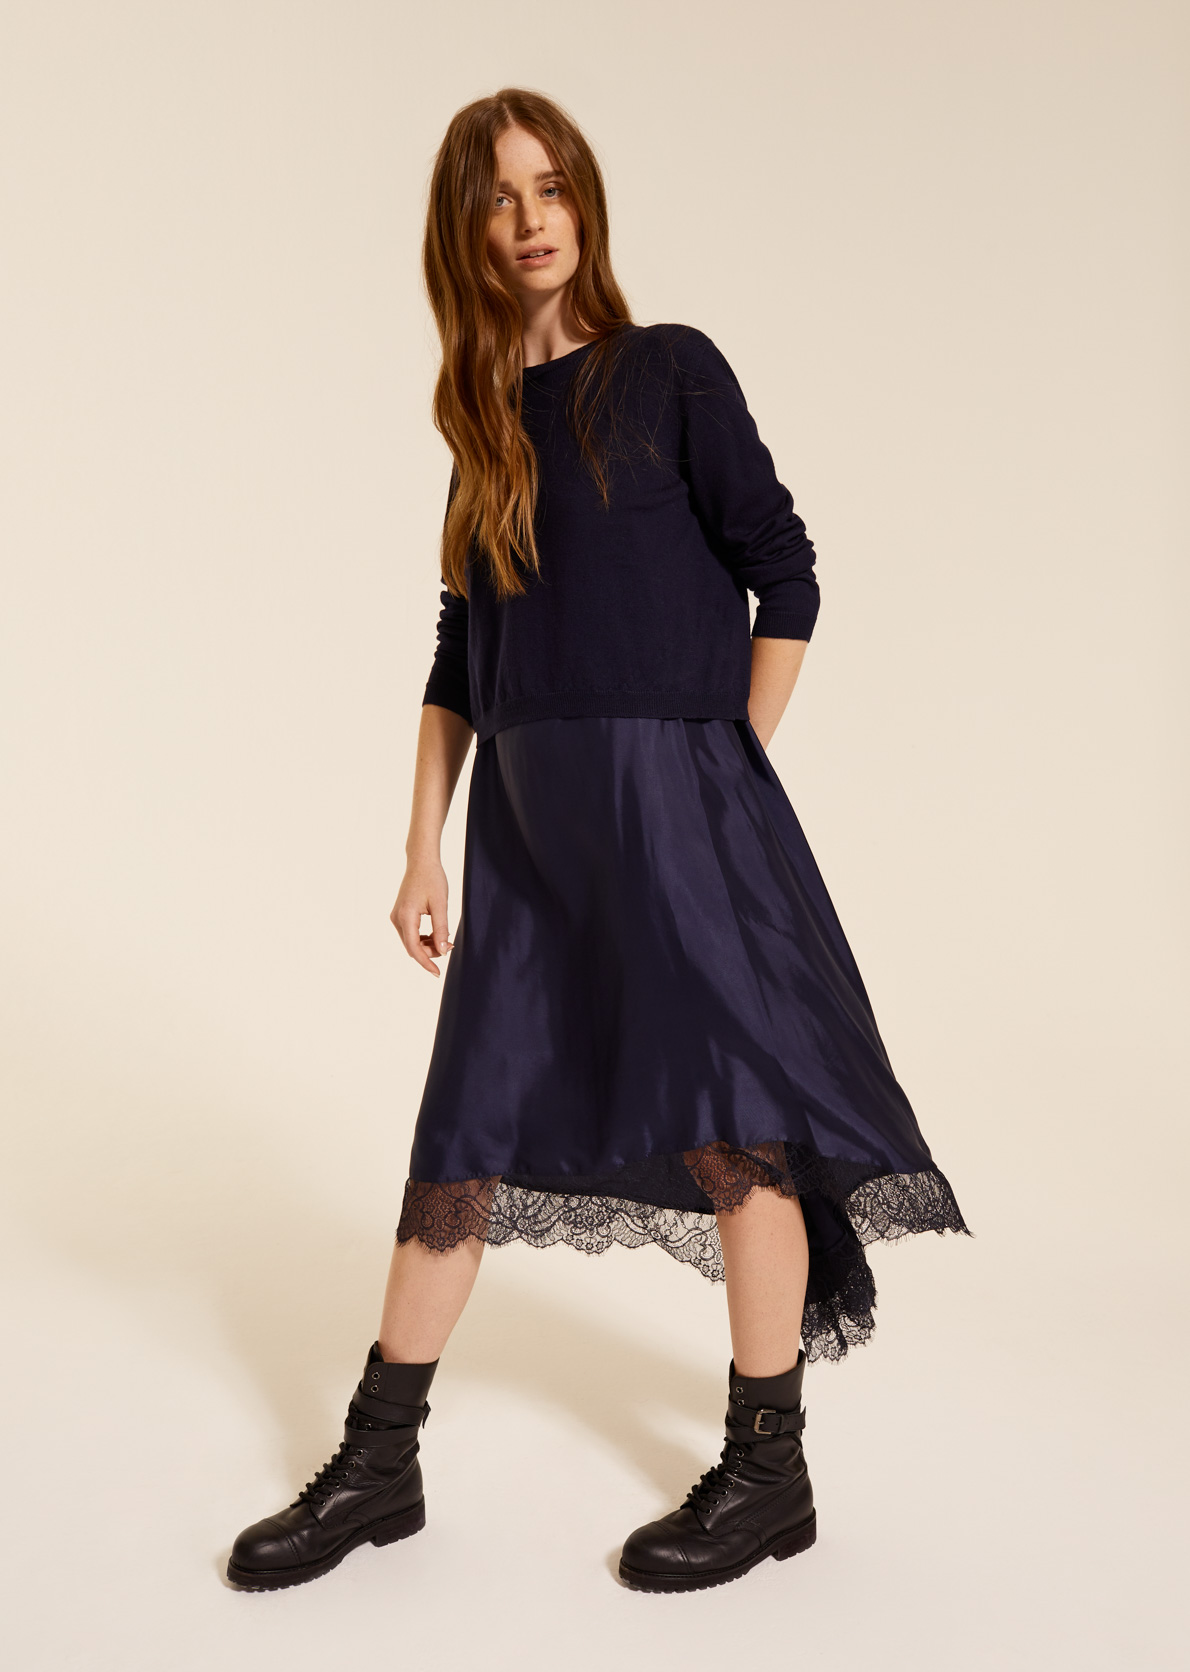 Boxy jumper and dress with lace